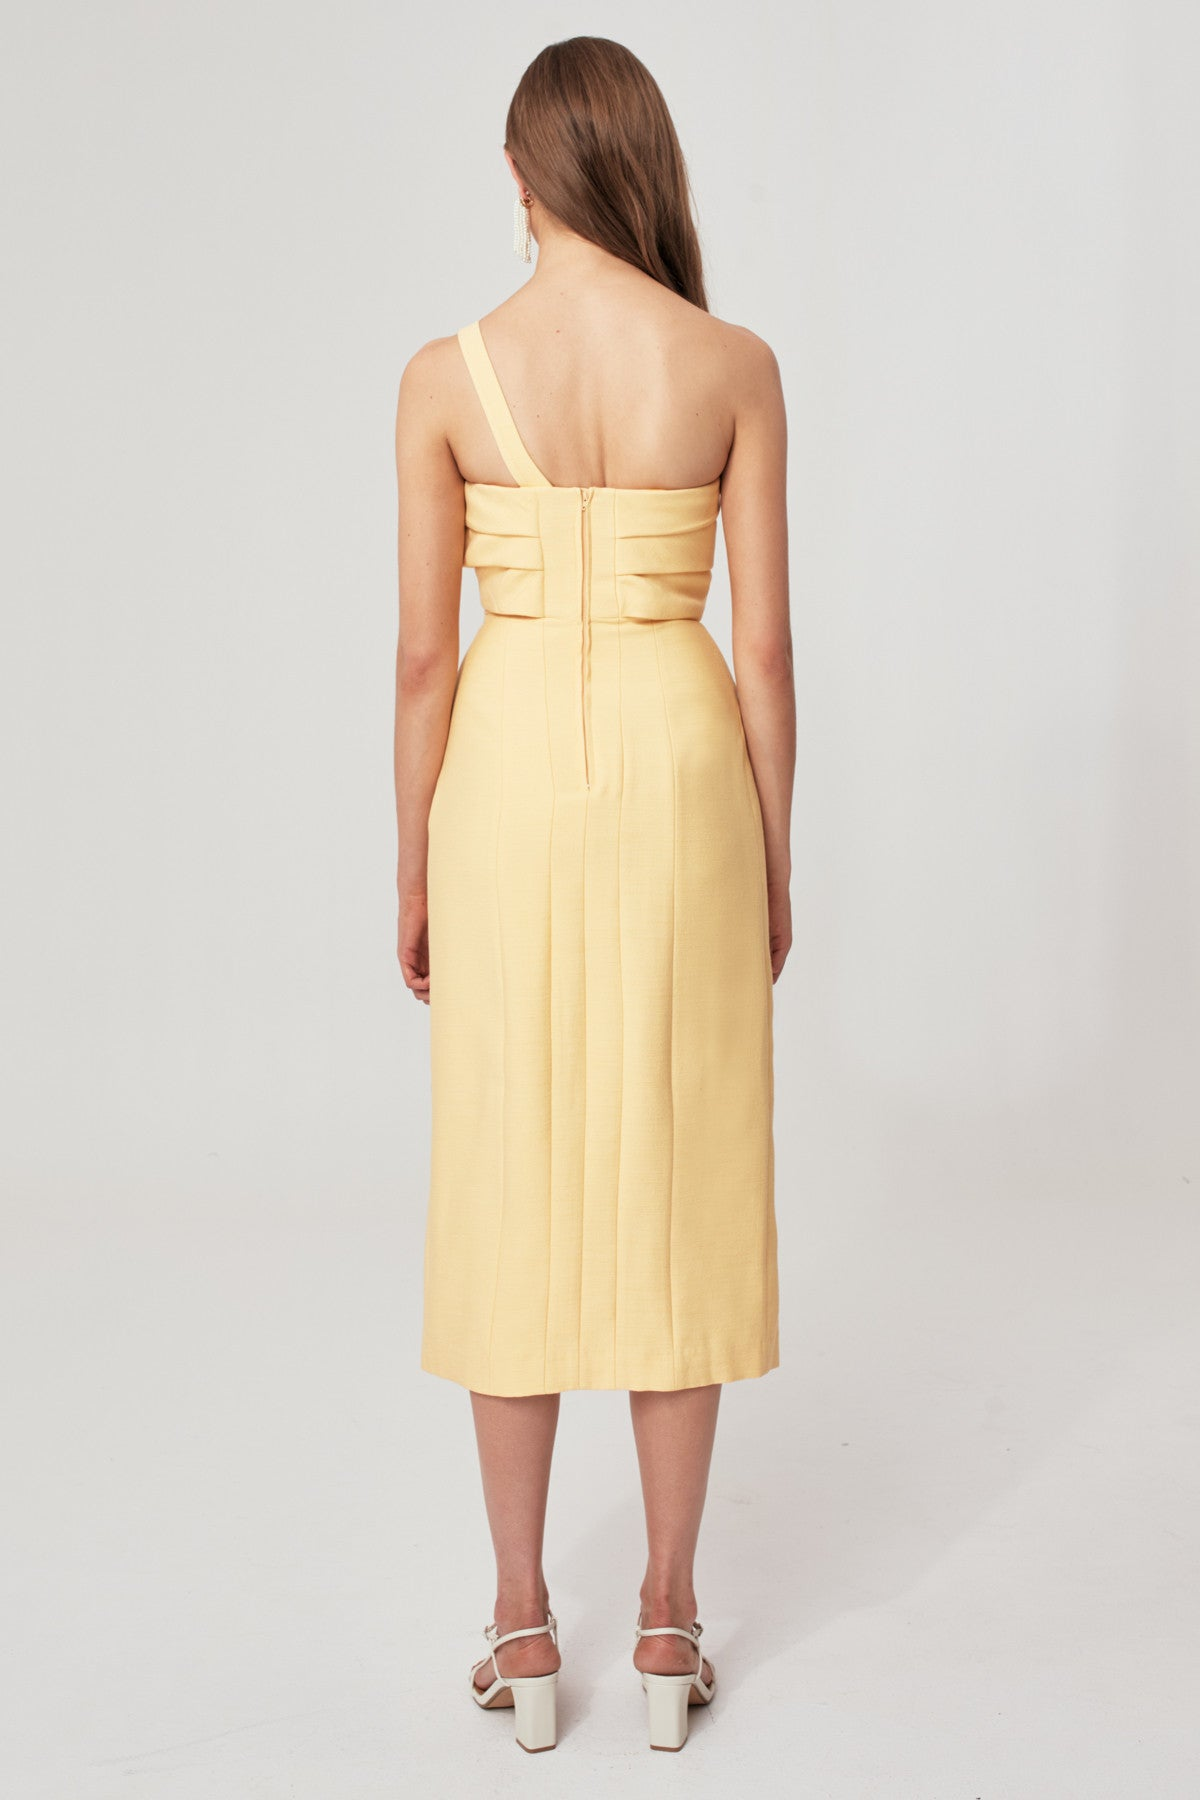 EACH OTHER MIDI DRESS butter